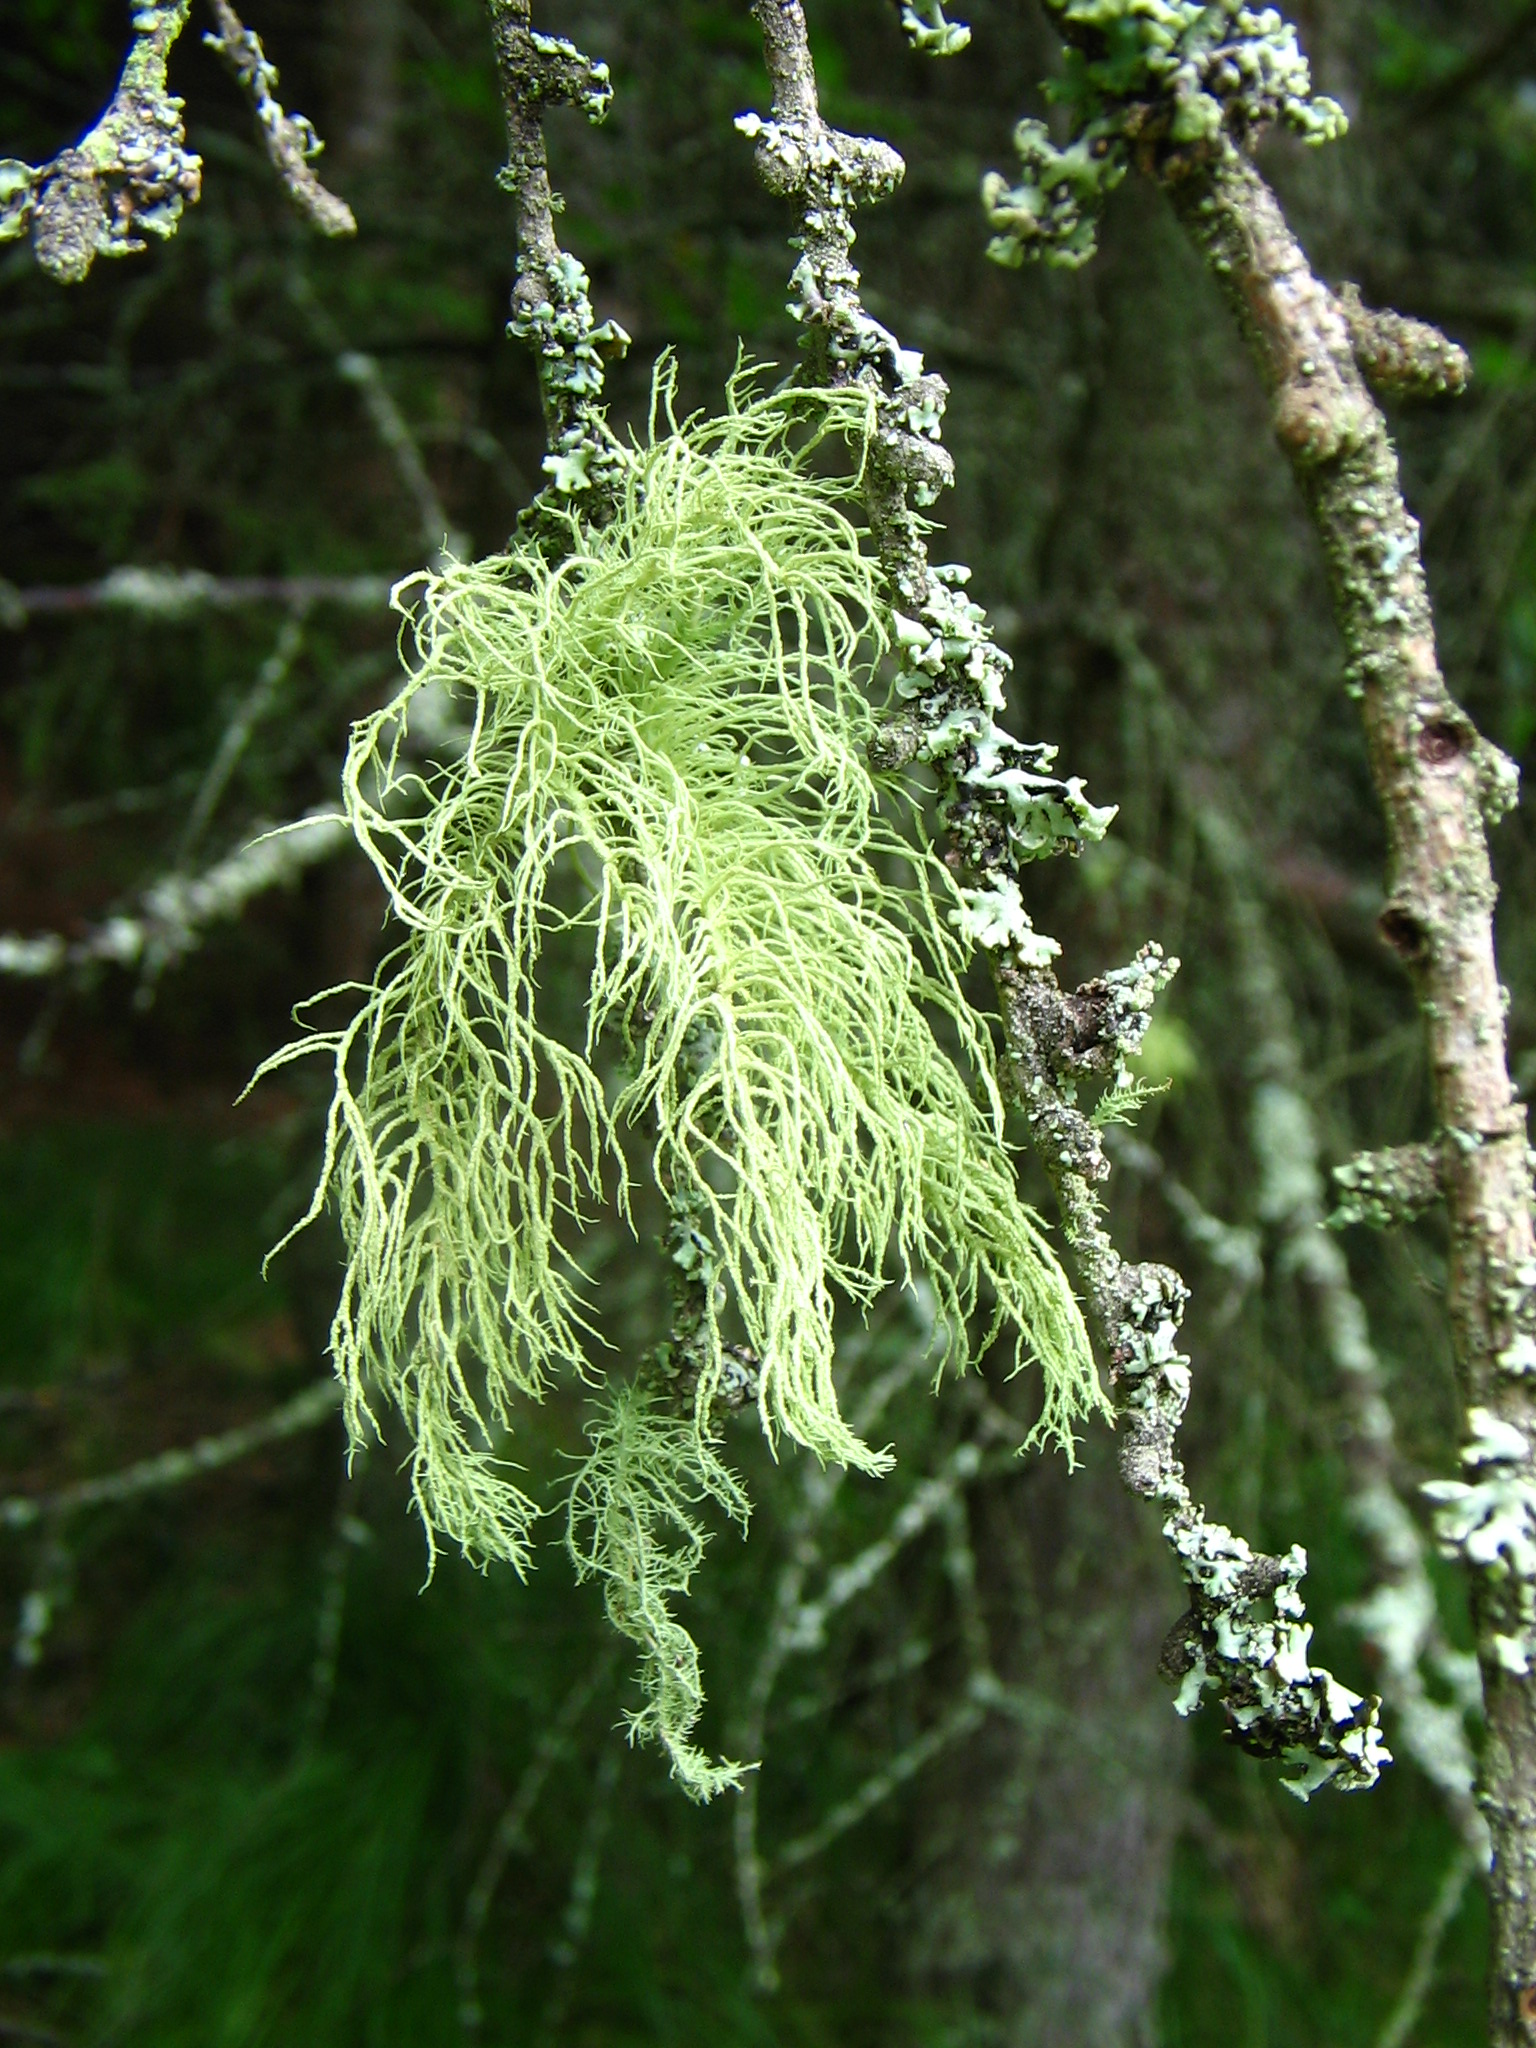 https://upload.wikimedia.org/wikipedia/commons/2/27/Usnea_1_%282005_07_19%29.jpg